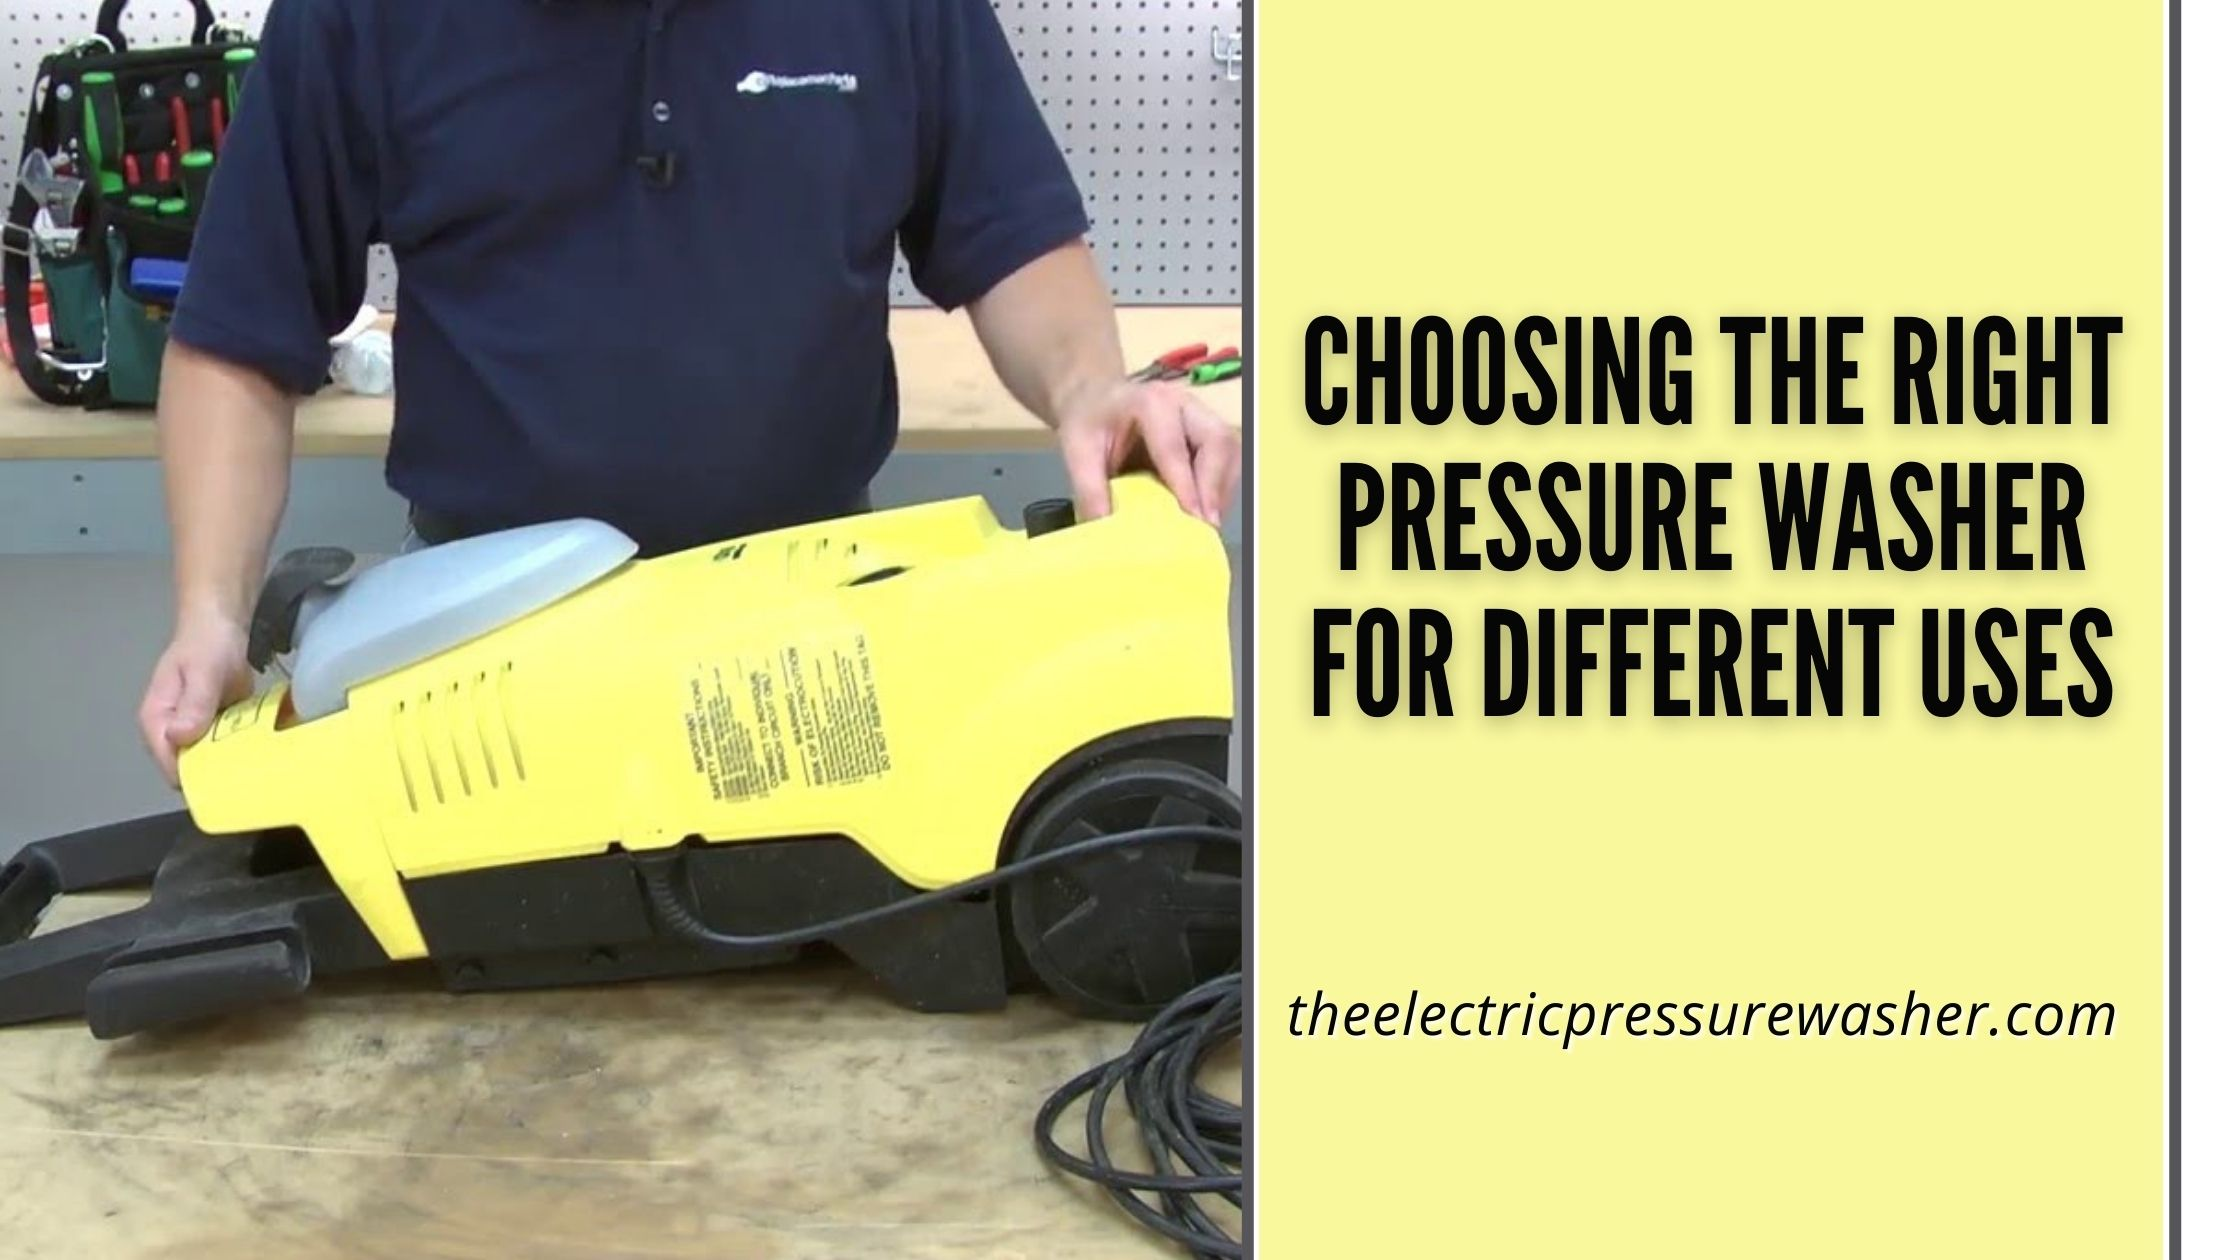 Choosing the right pressure washer for Different Uses